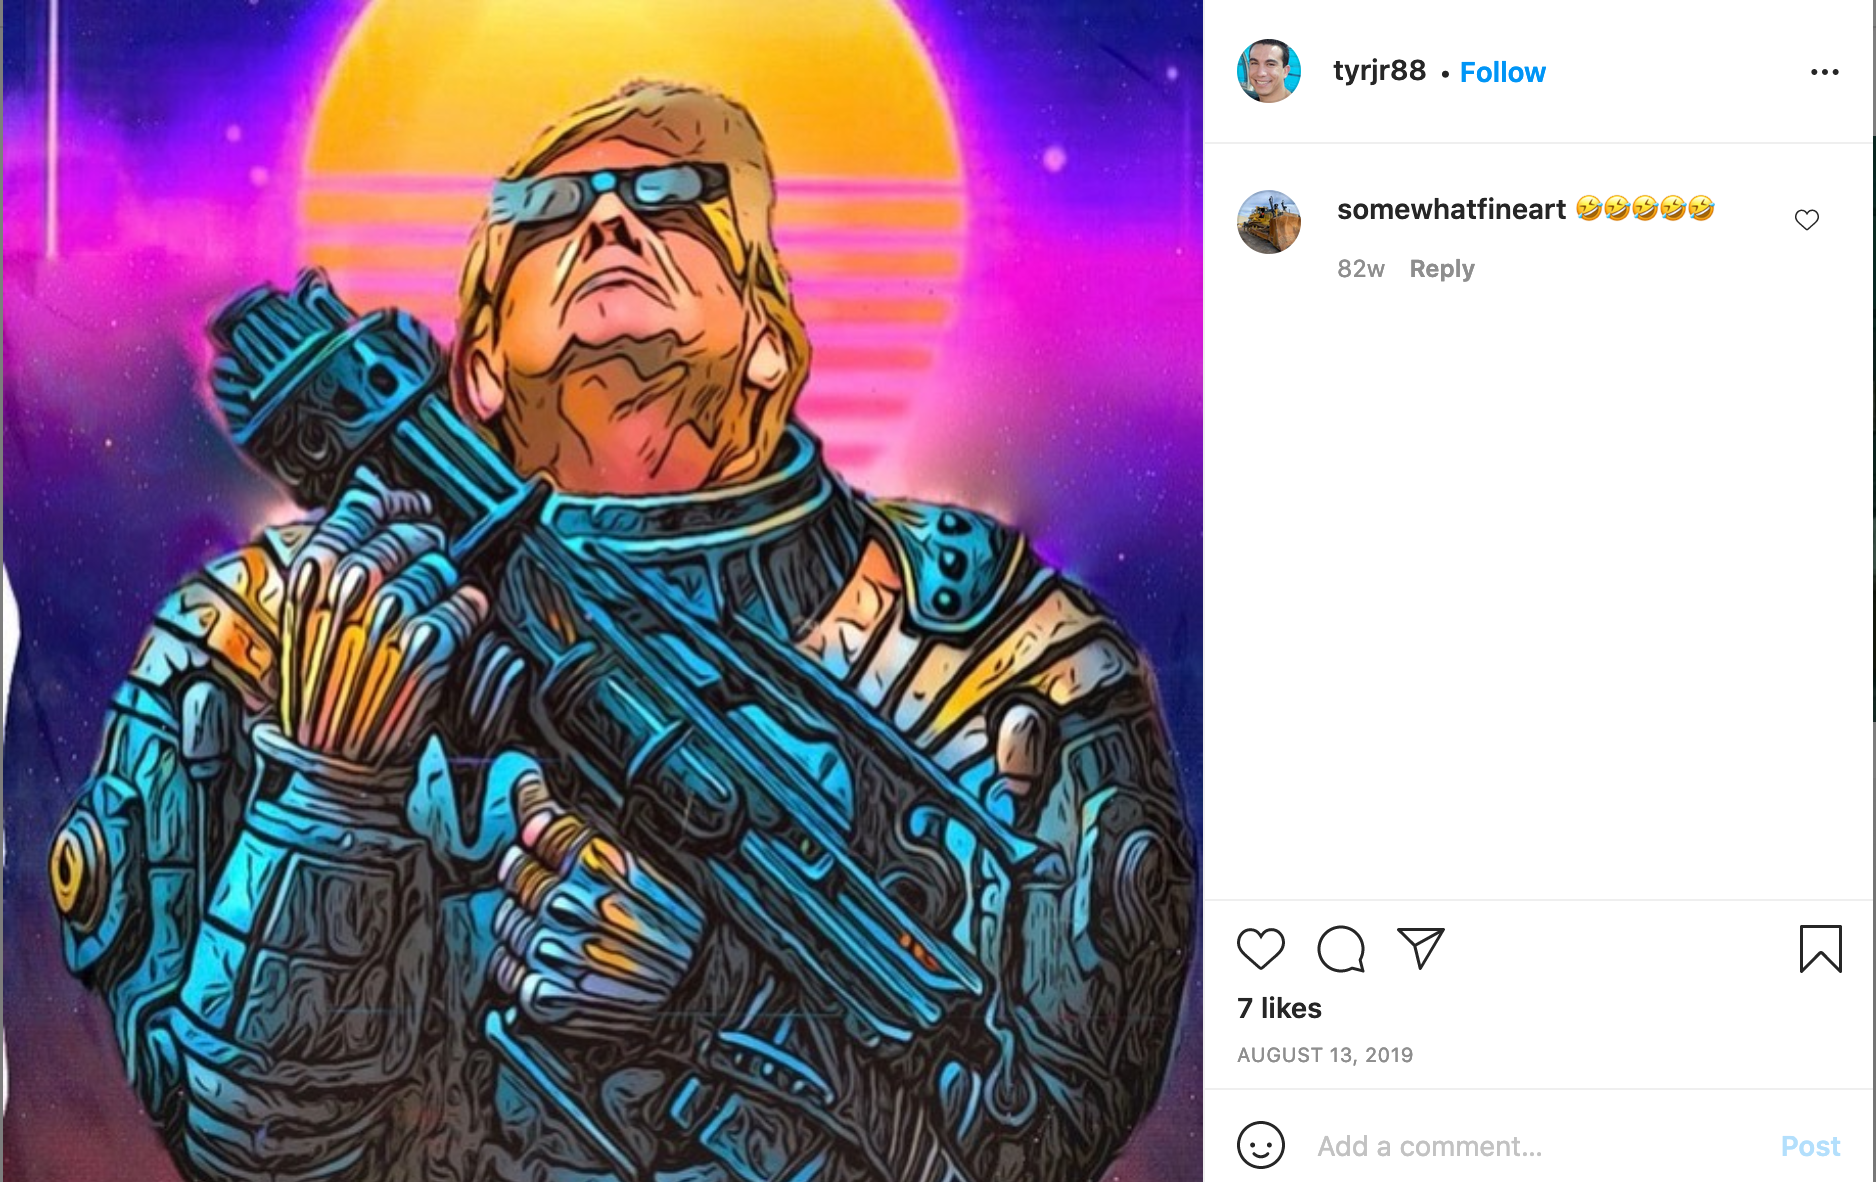 Screenshot from Roman's Instagram depicting fanart of Trump dressed up as a kitschy 80s space marine with a lazer gun and sunglasses.